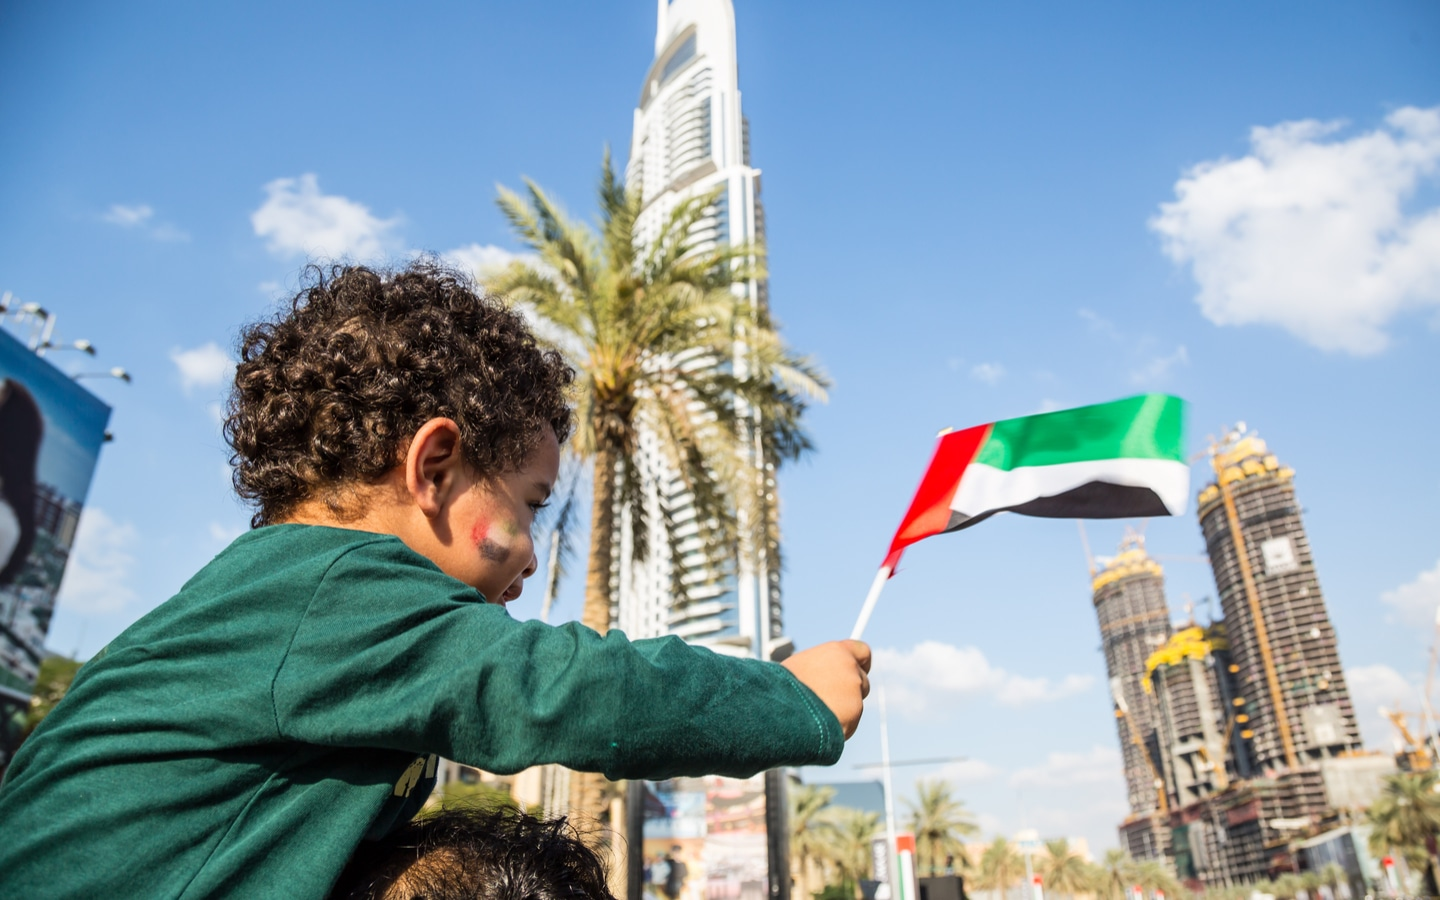 activities for kids for UAE national day